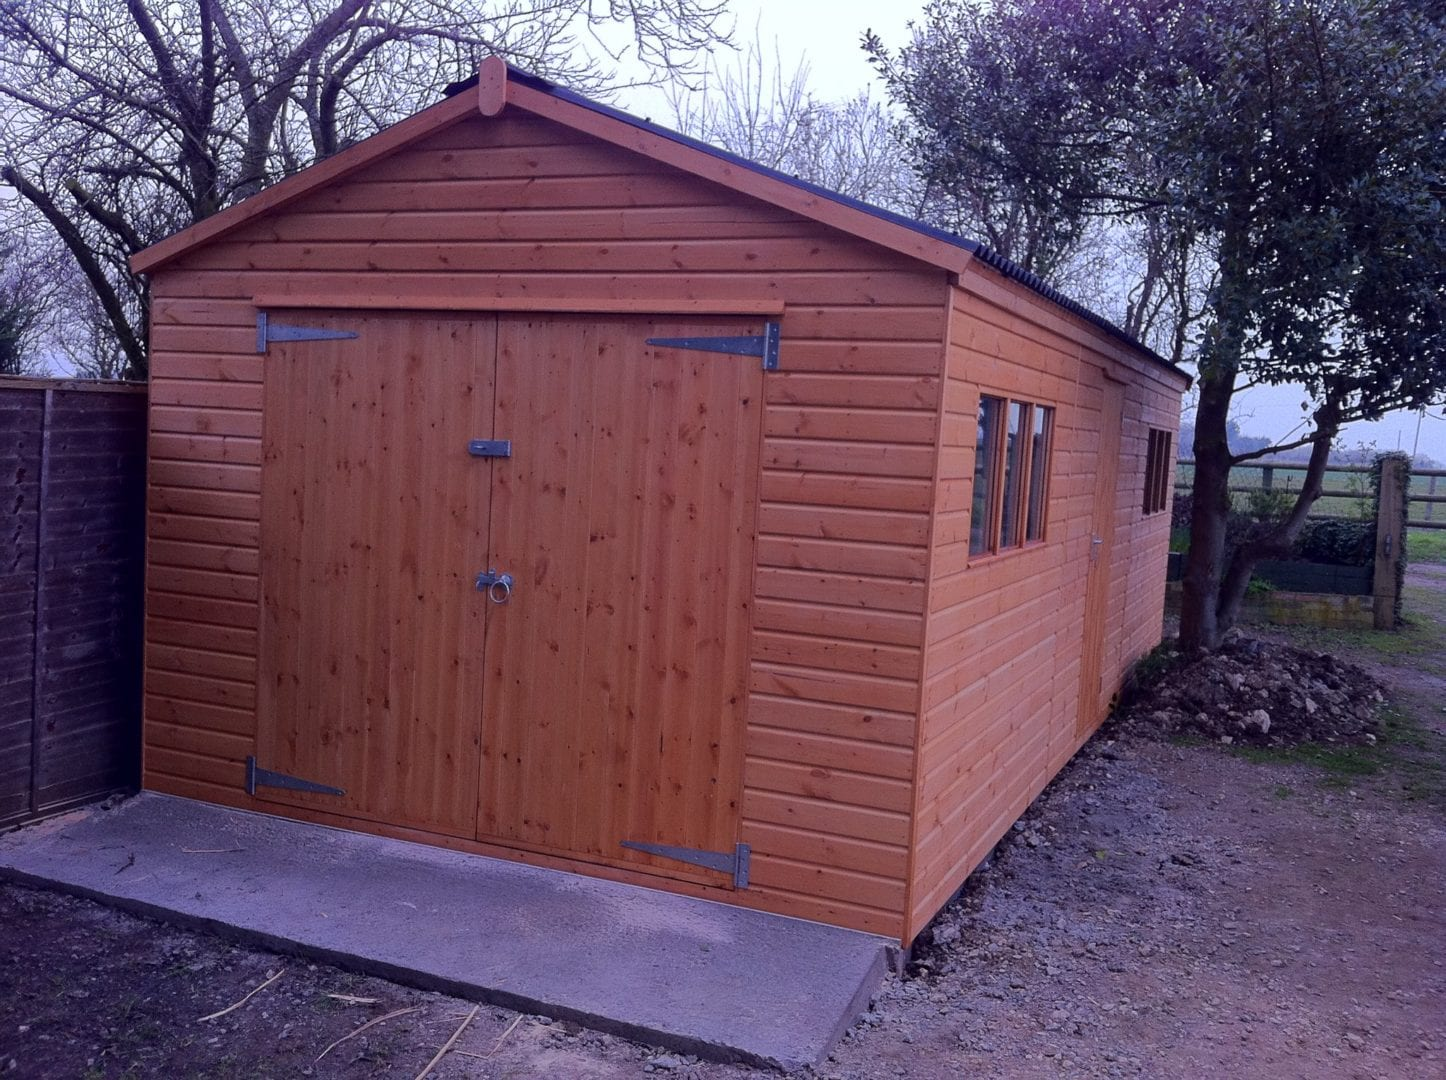 12x12 shed material list large wooden sheds workshop for Garden shed 12x12